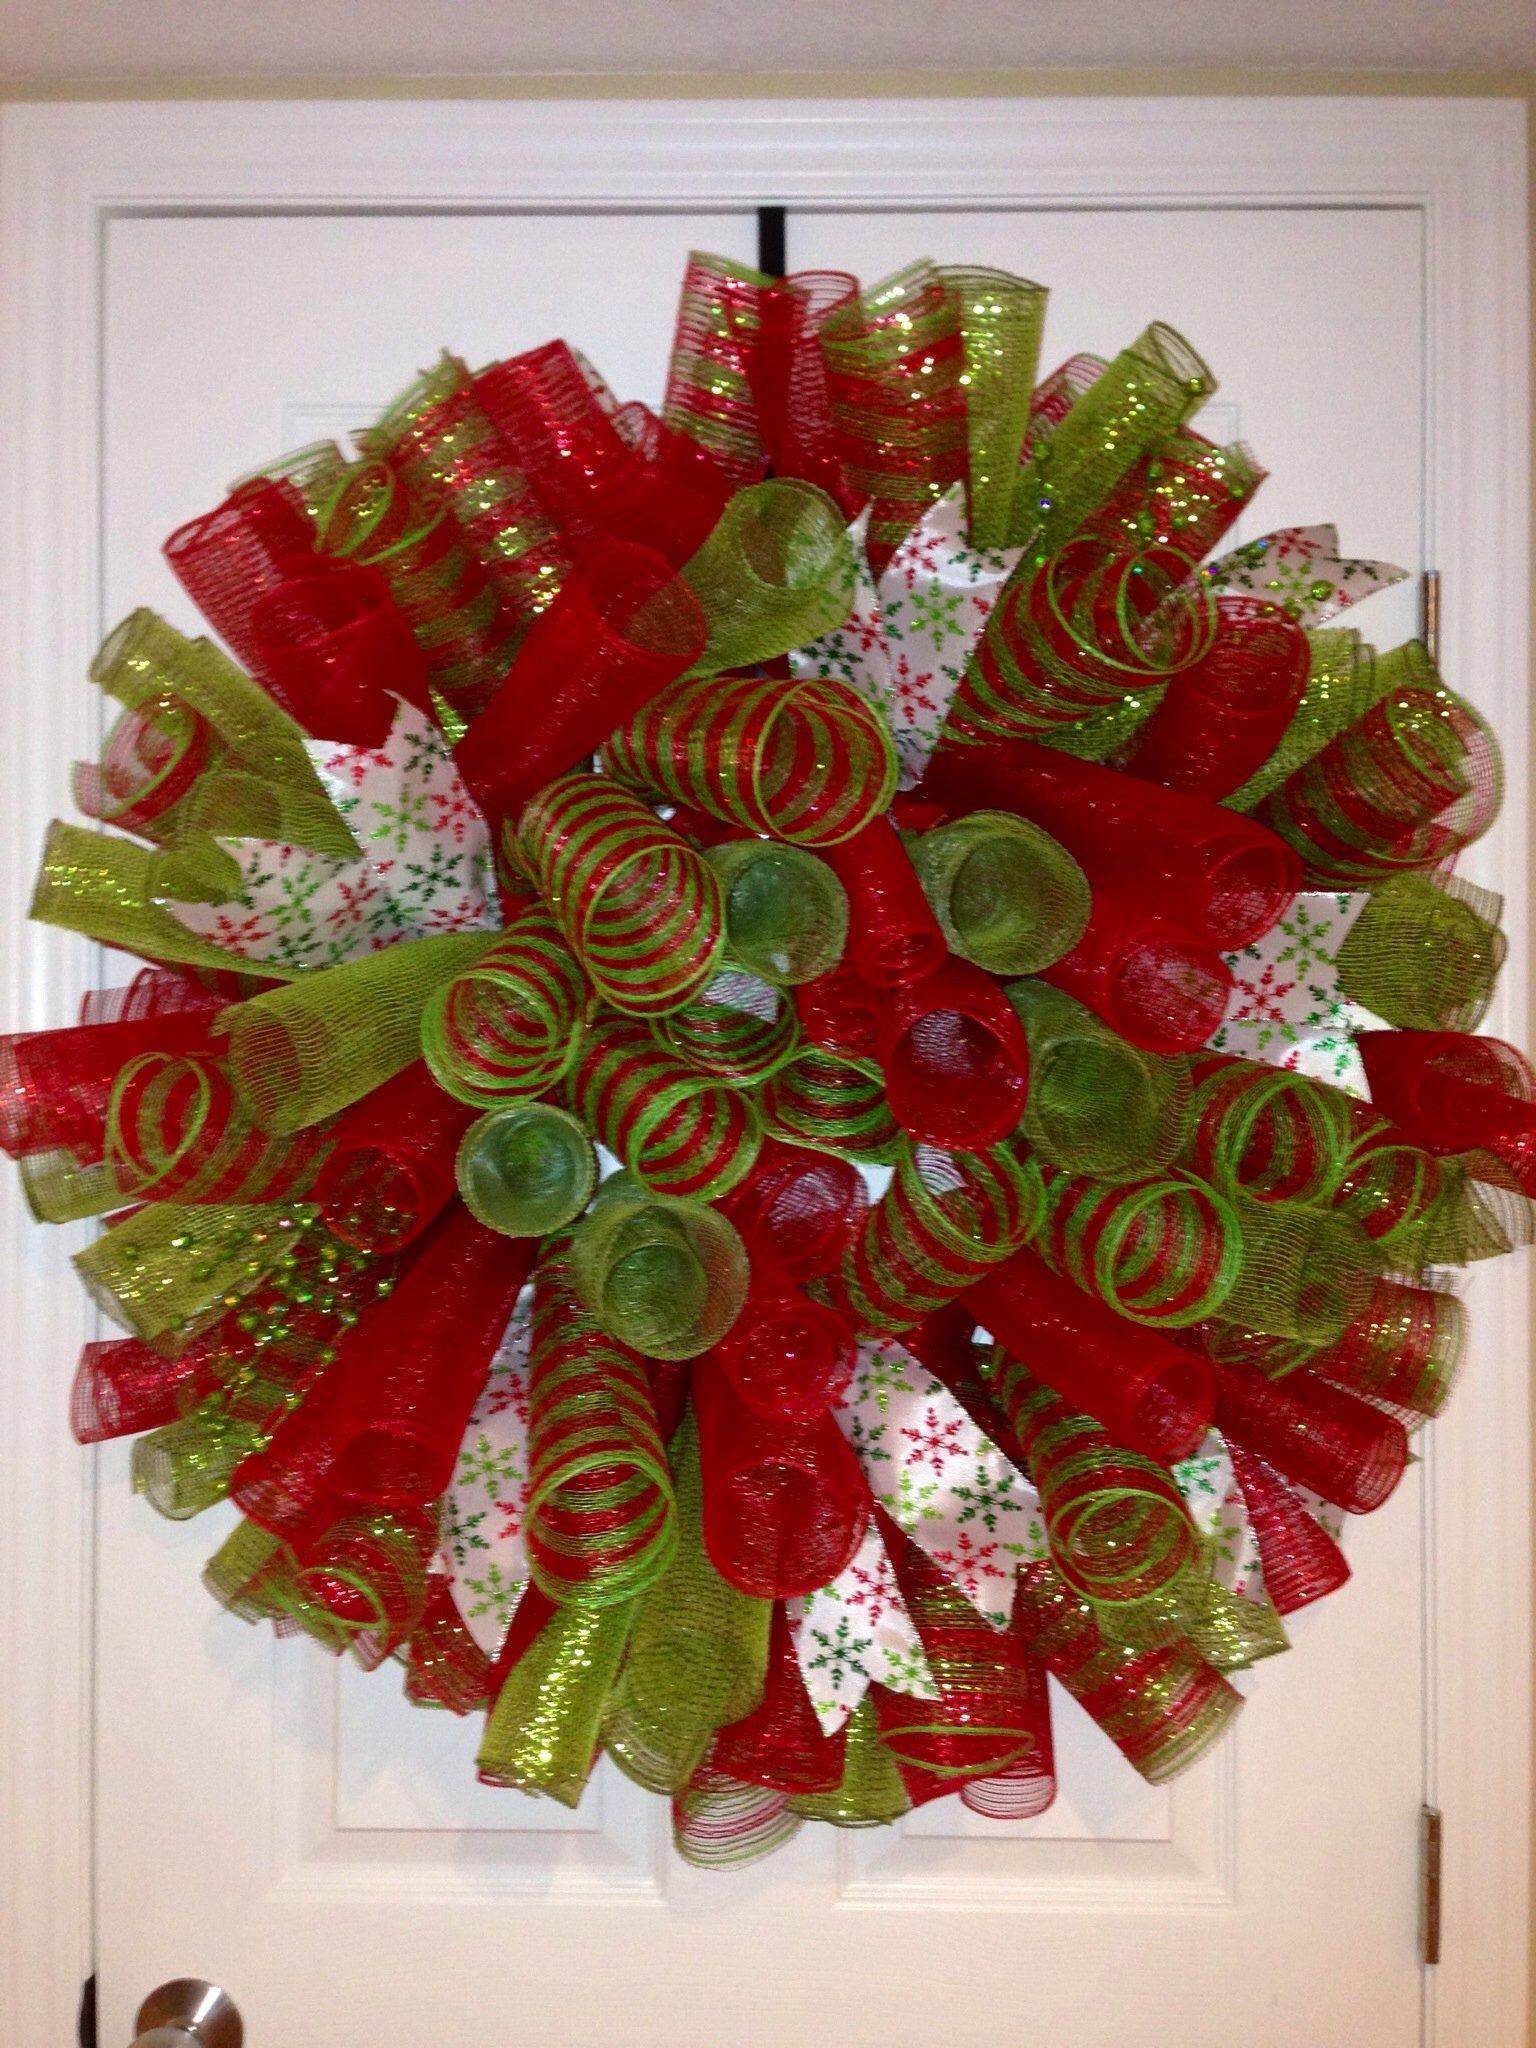 10 Lovely Christmas Deco Mesh Wreath Ideas images about deco mesh wreath ideas on pinterest wreaths and idolza 2020